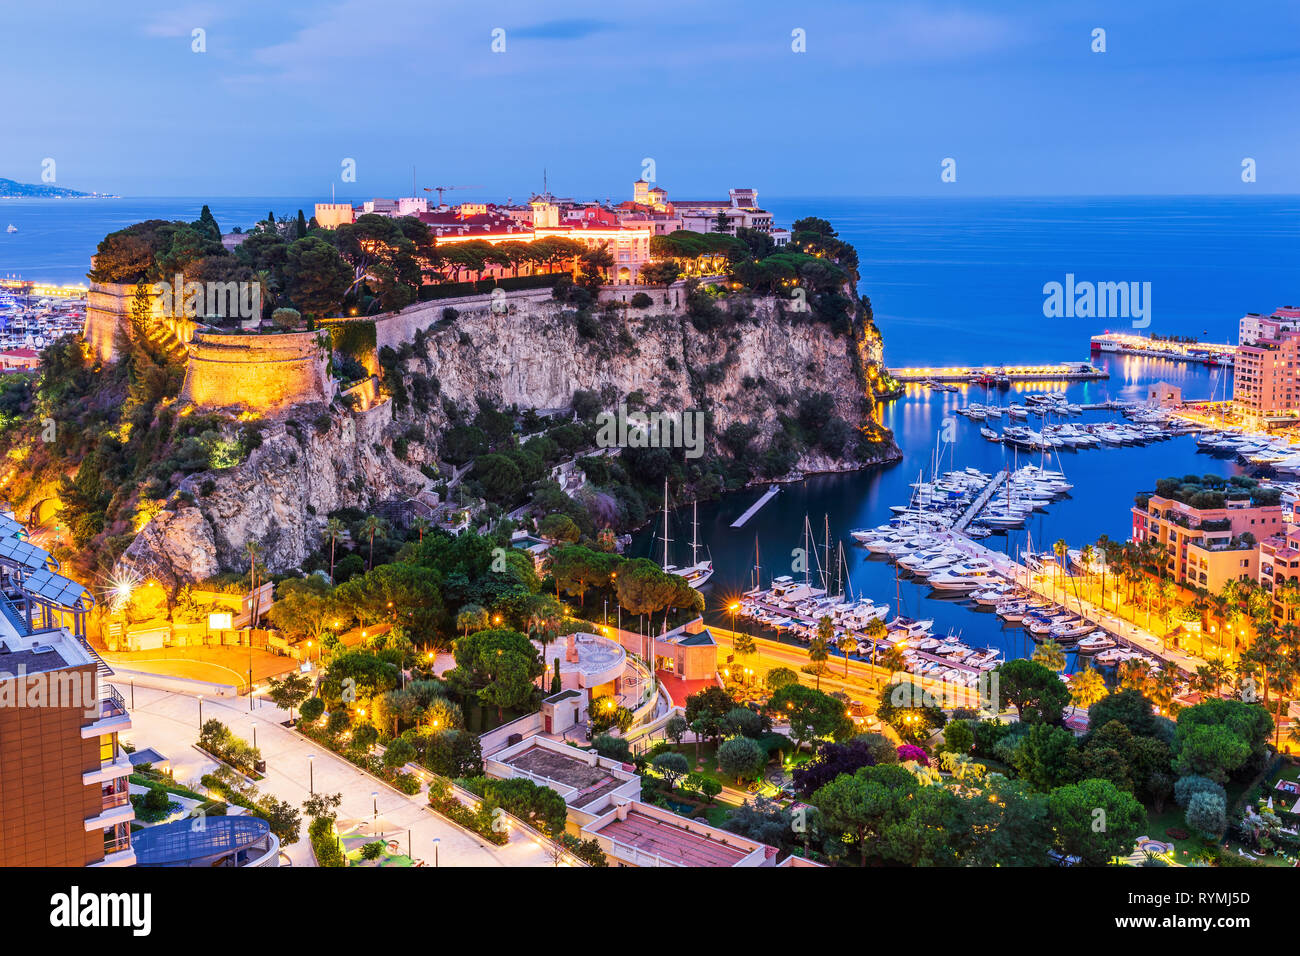 Monaco. Panoramic view of prince's palace in Monte Carlo. - Stock Image